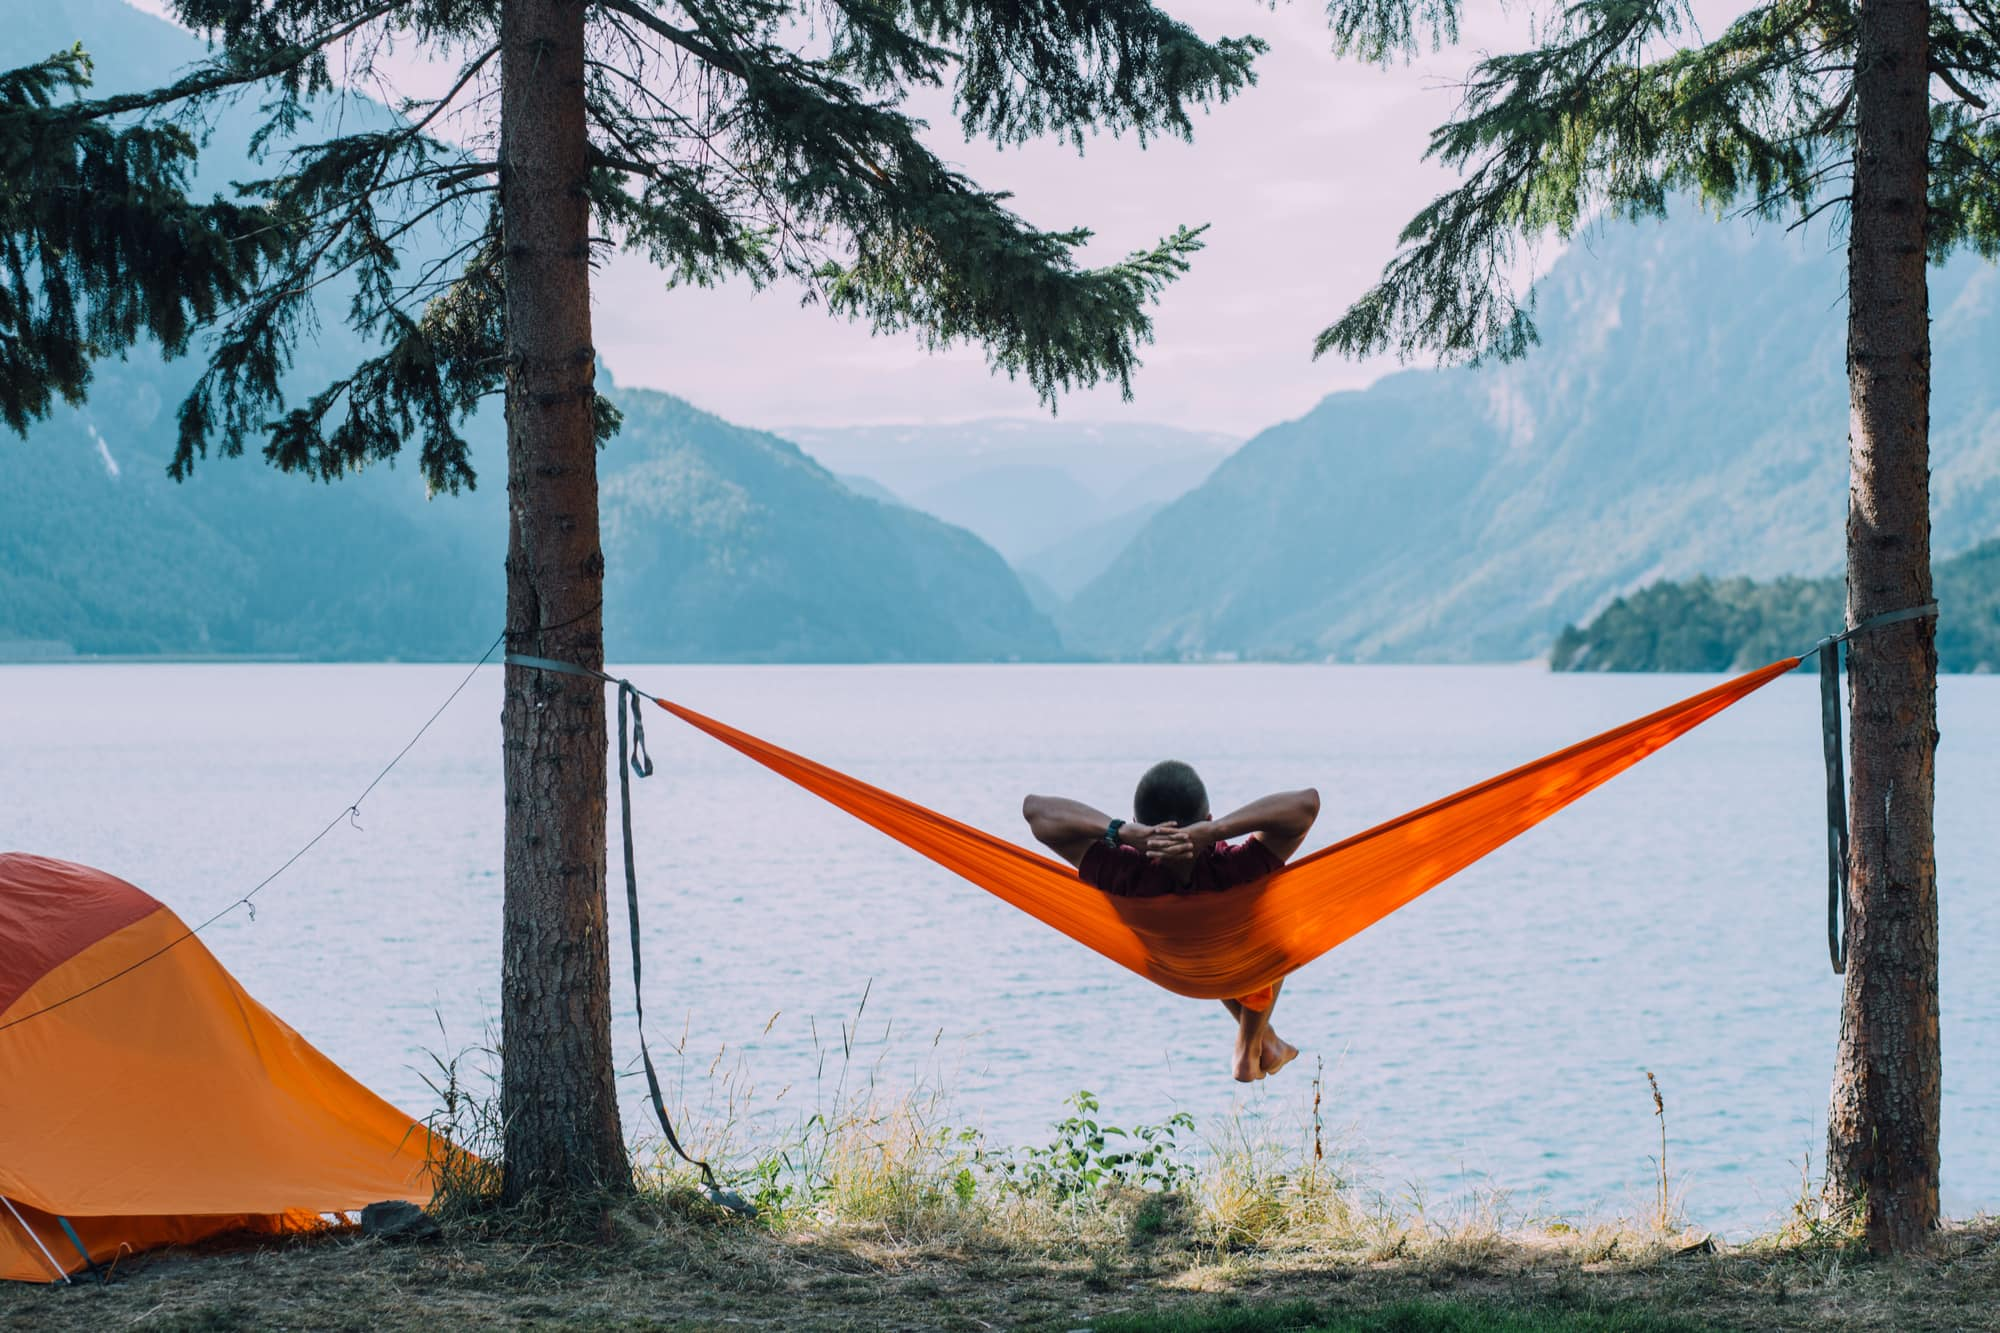 a man sitting in a hammock near a lake next to a tent